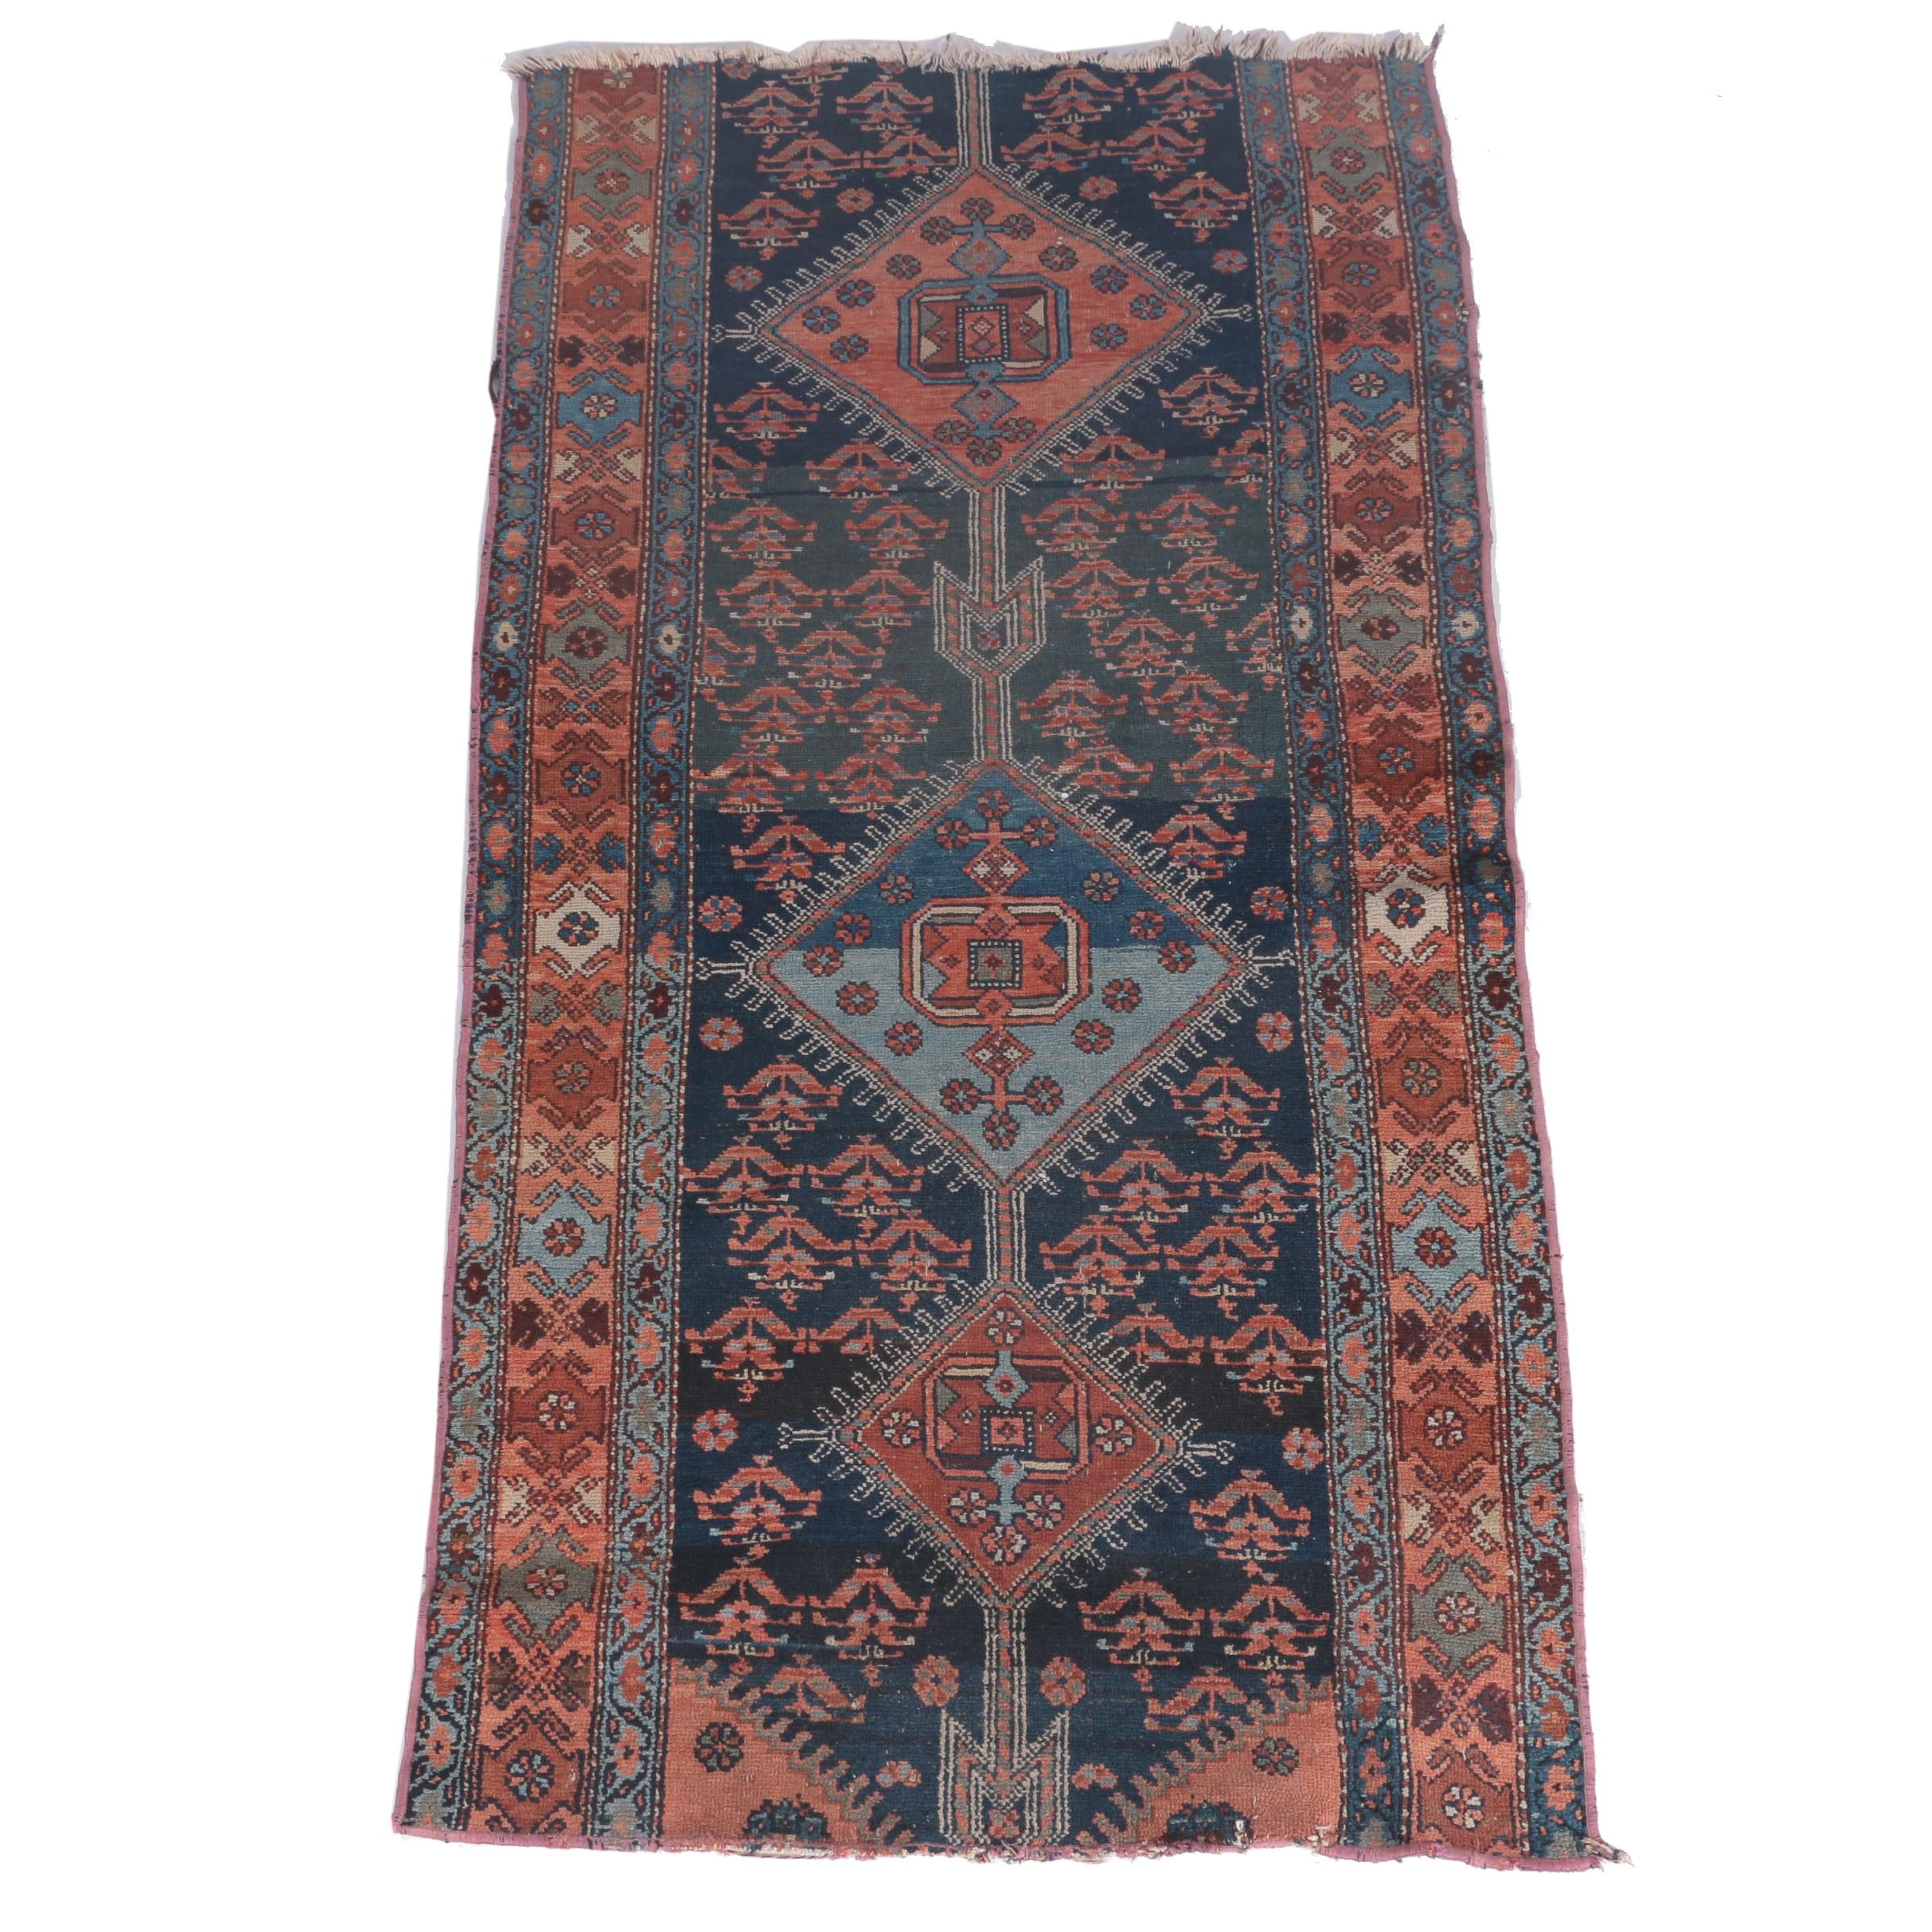 Hand-Knotted Caucasian Dagestan Wool Carpet Runner Remnant